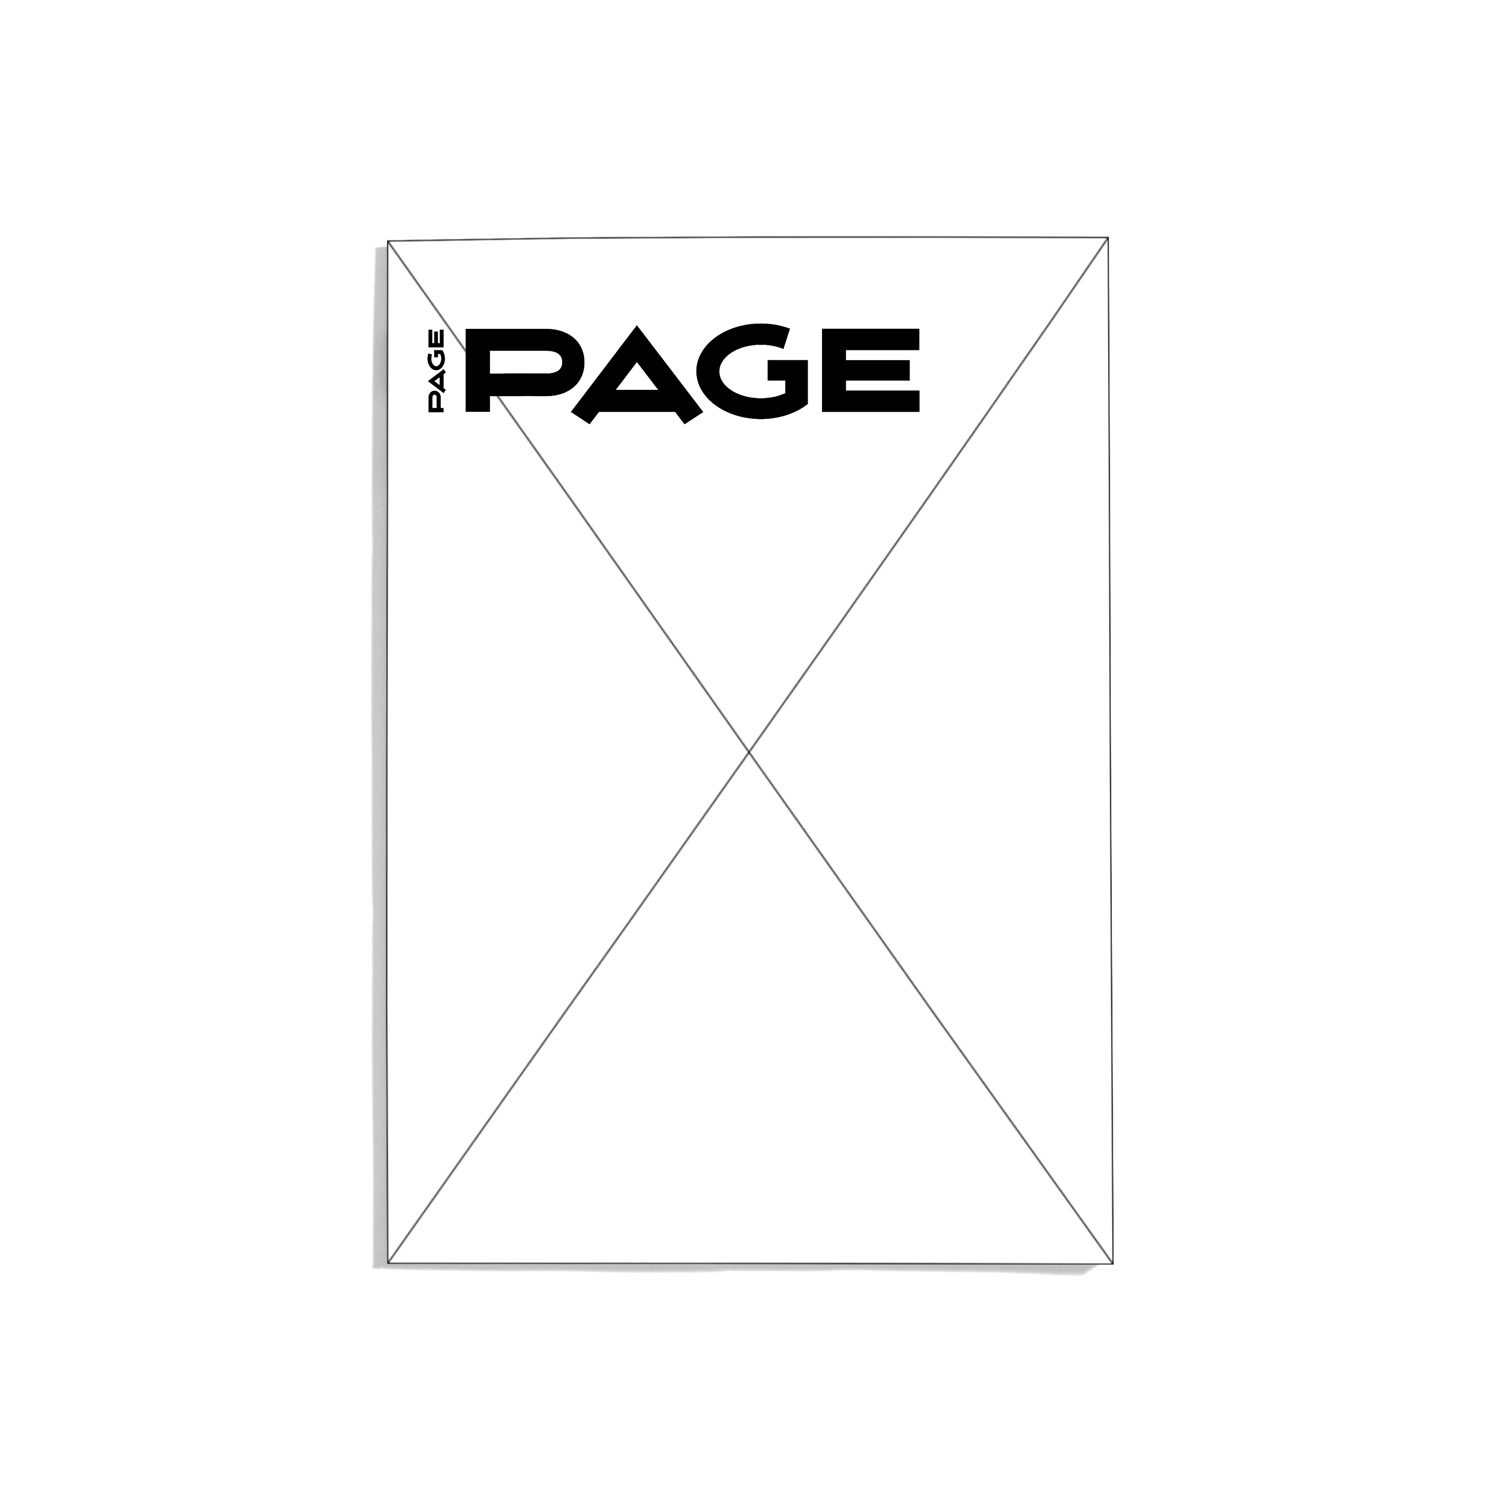 Page Oct. 2020